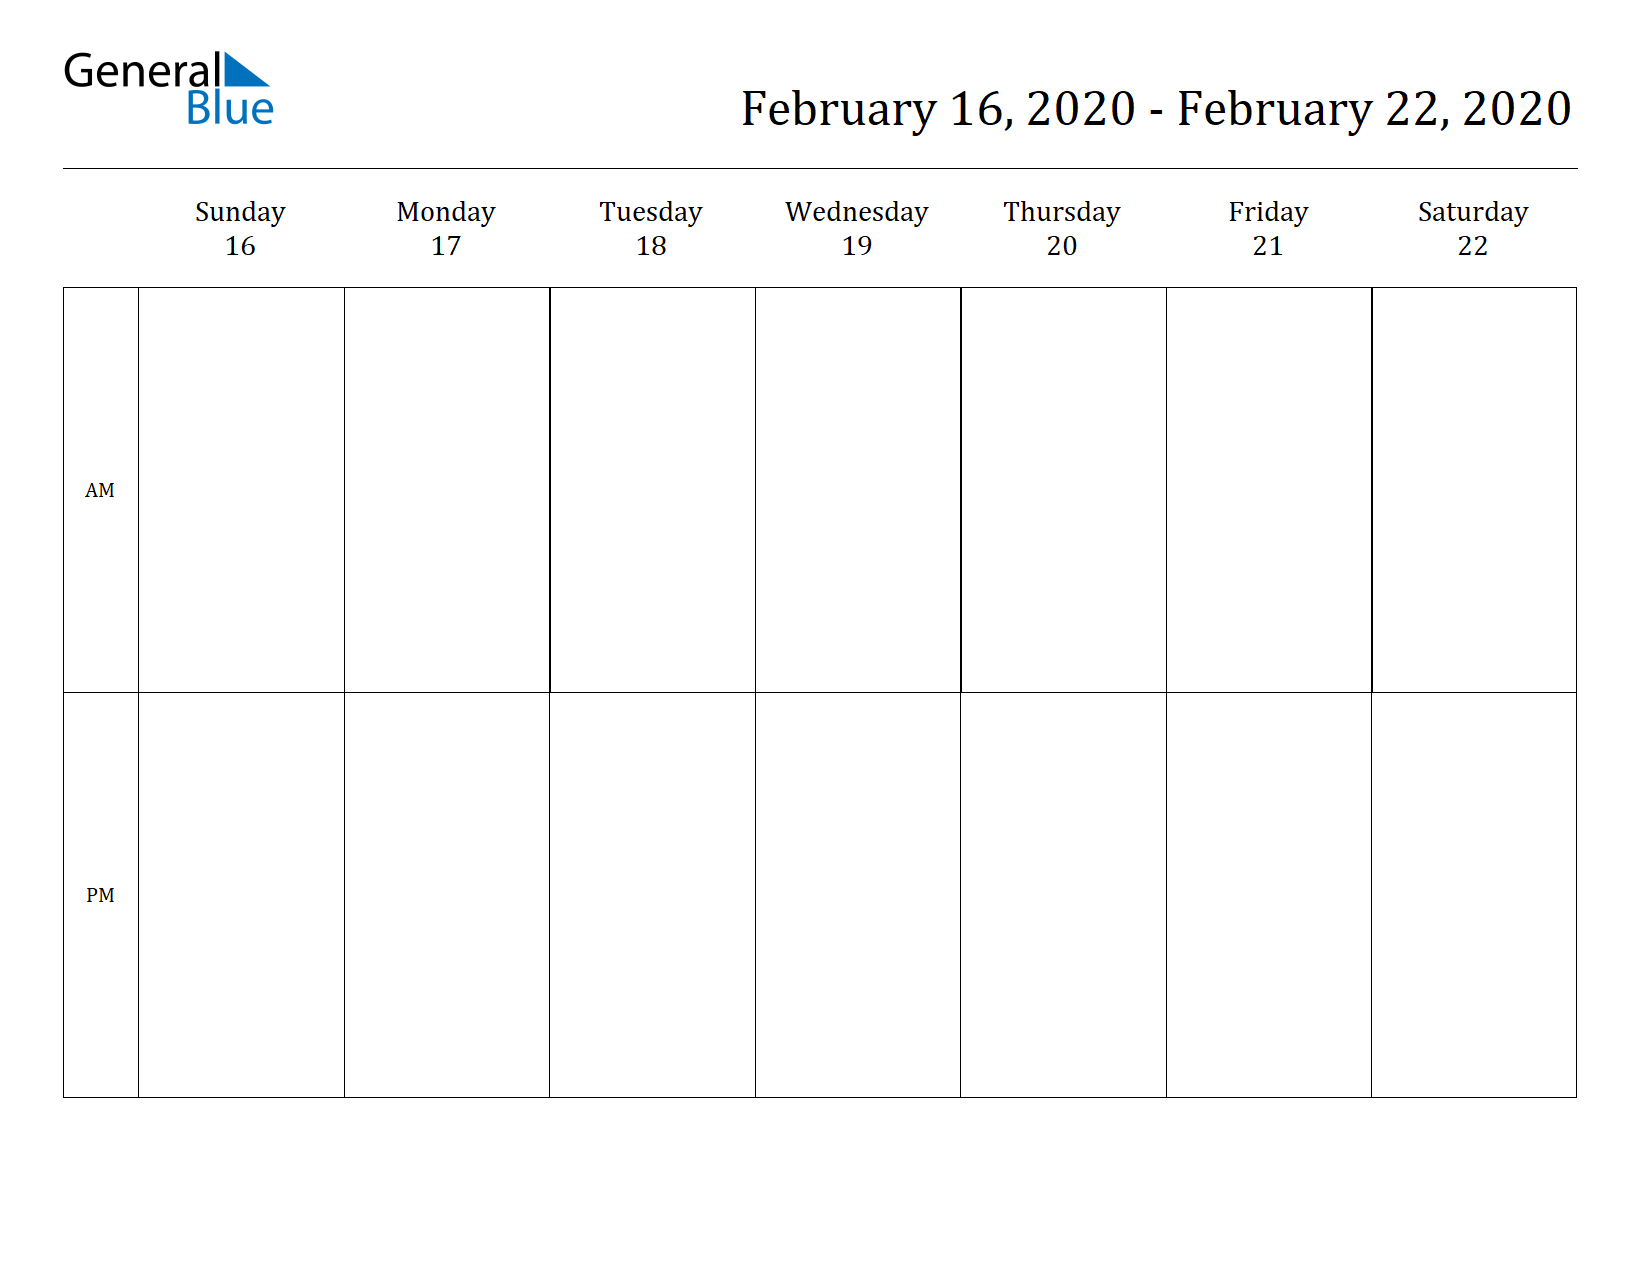 Weekly Calendar for Feb 16, 2020 to Feb 22, 2020